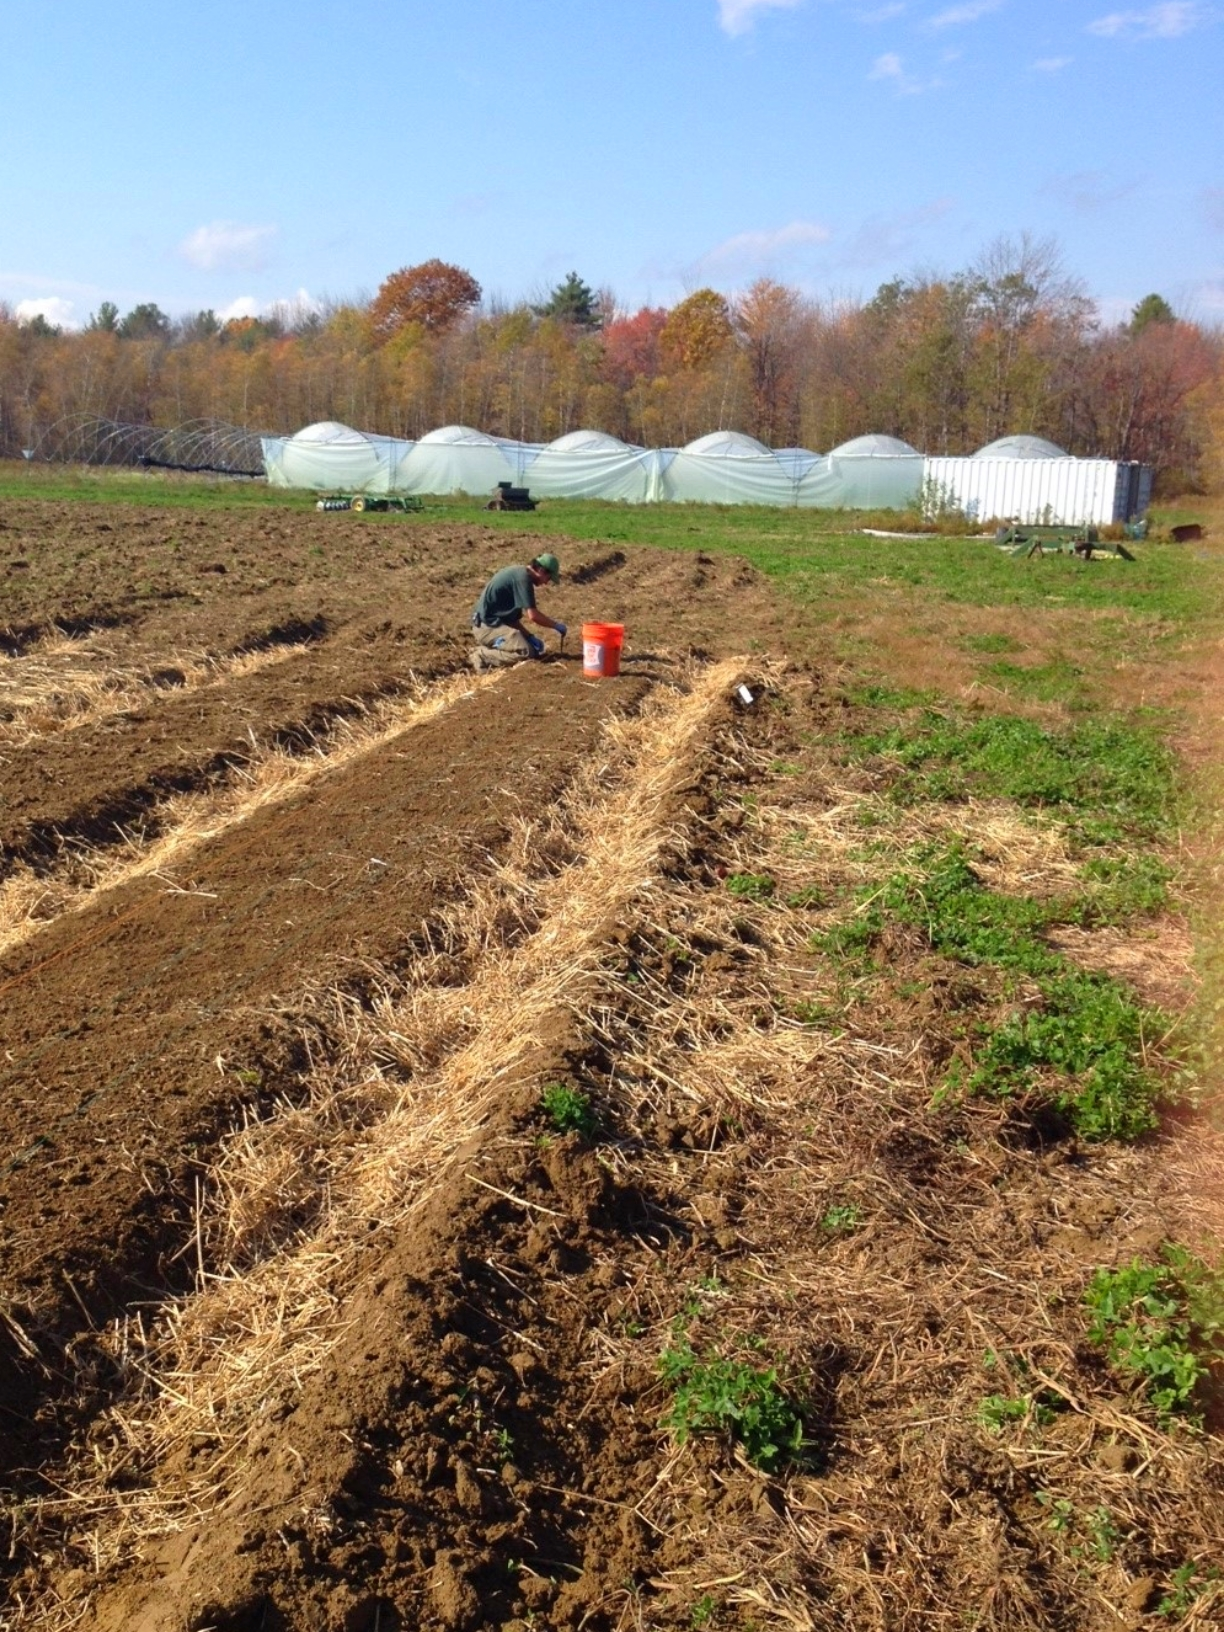 Eric hand-planting the first of many cloves.